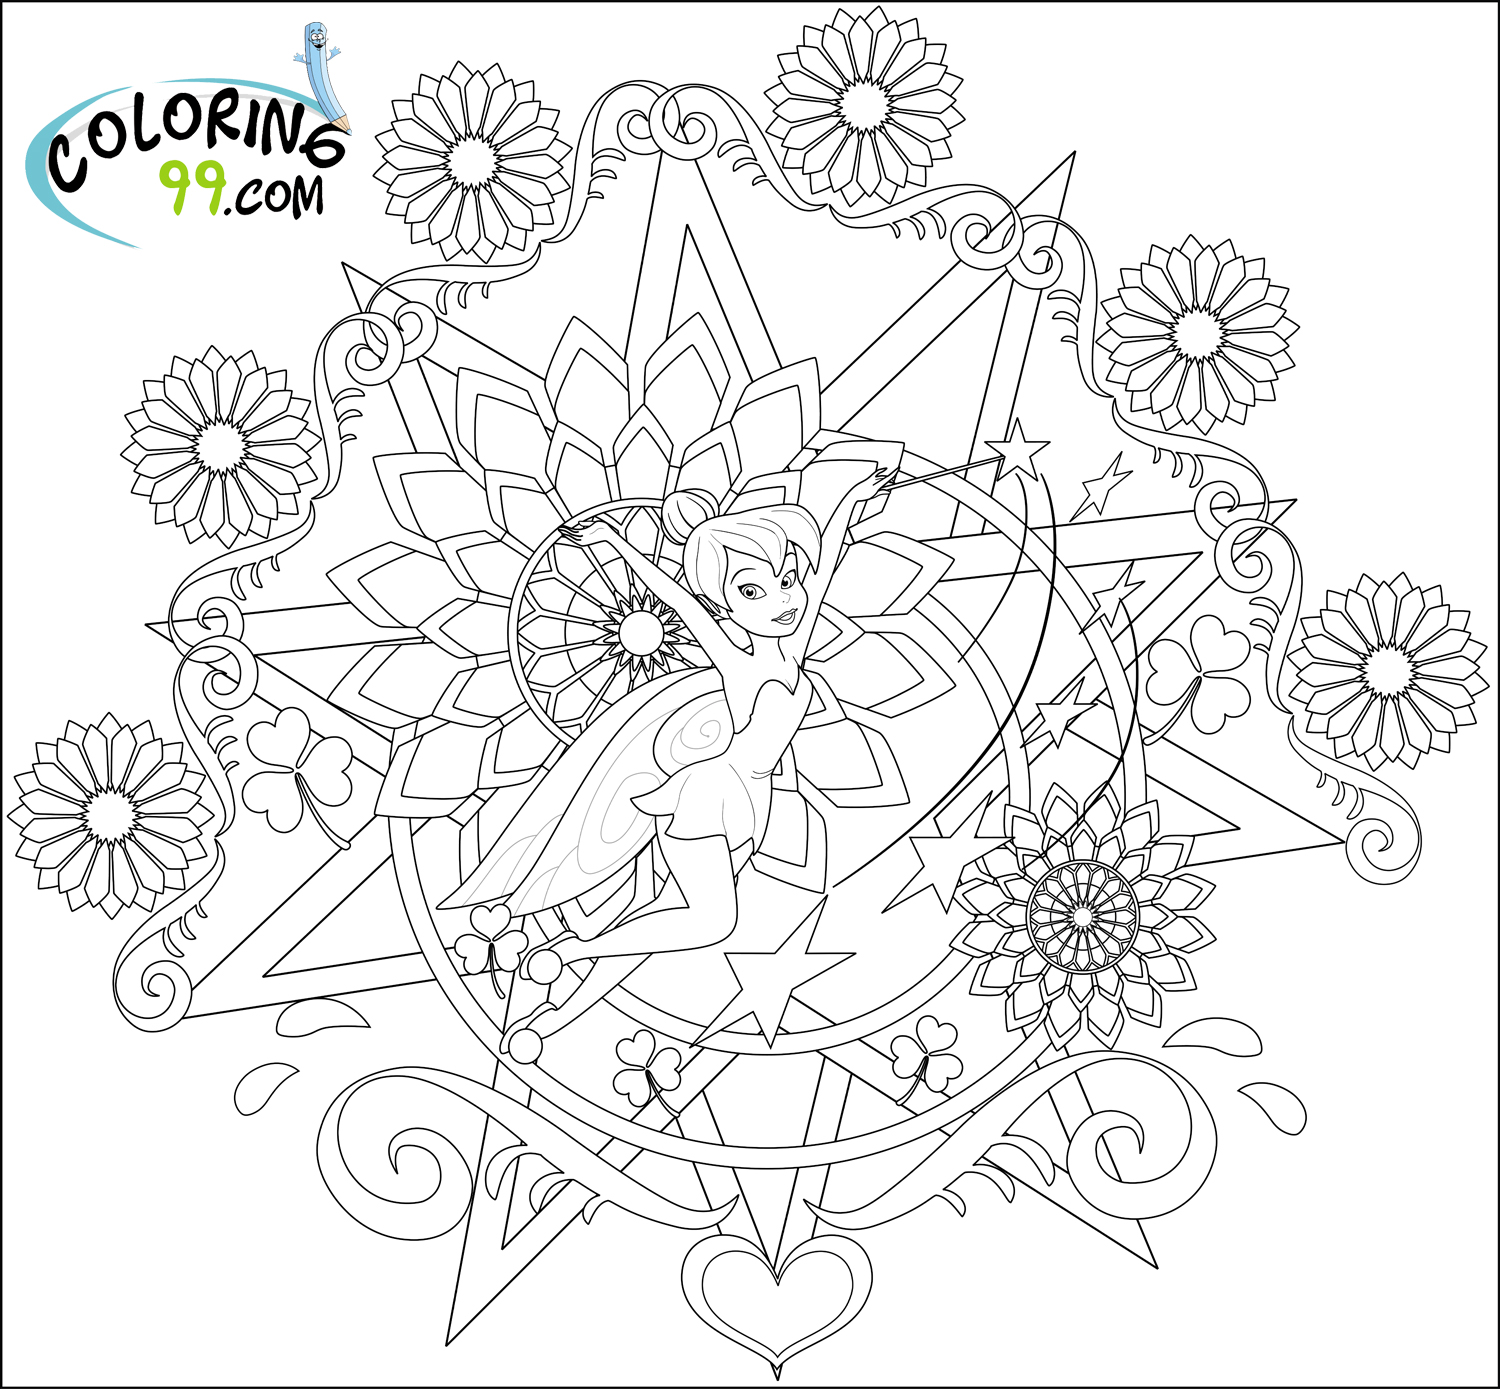 Tinkerbell Coloring Pages | Minister Coloring